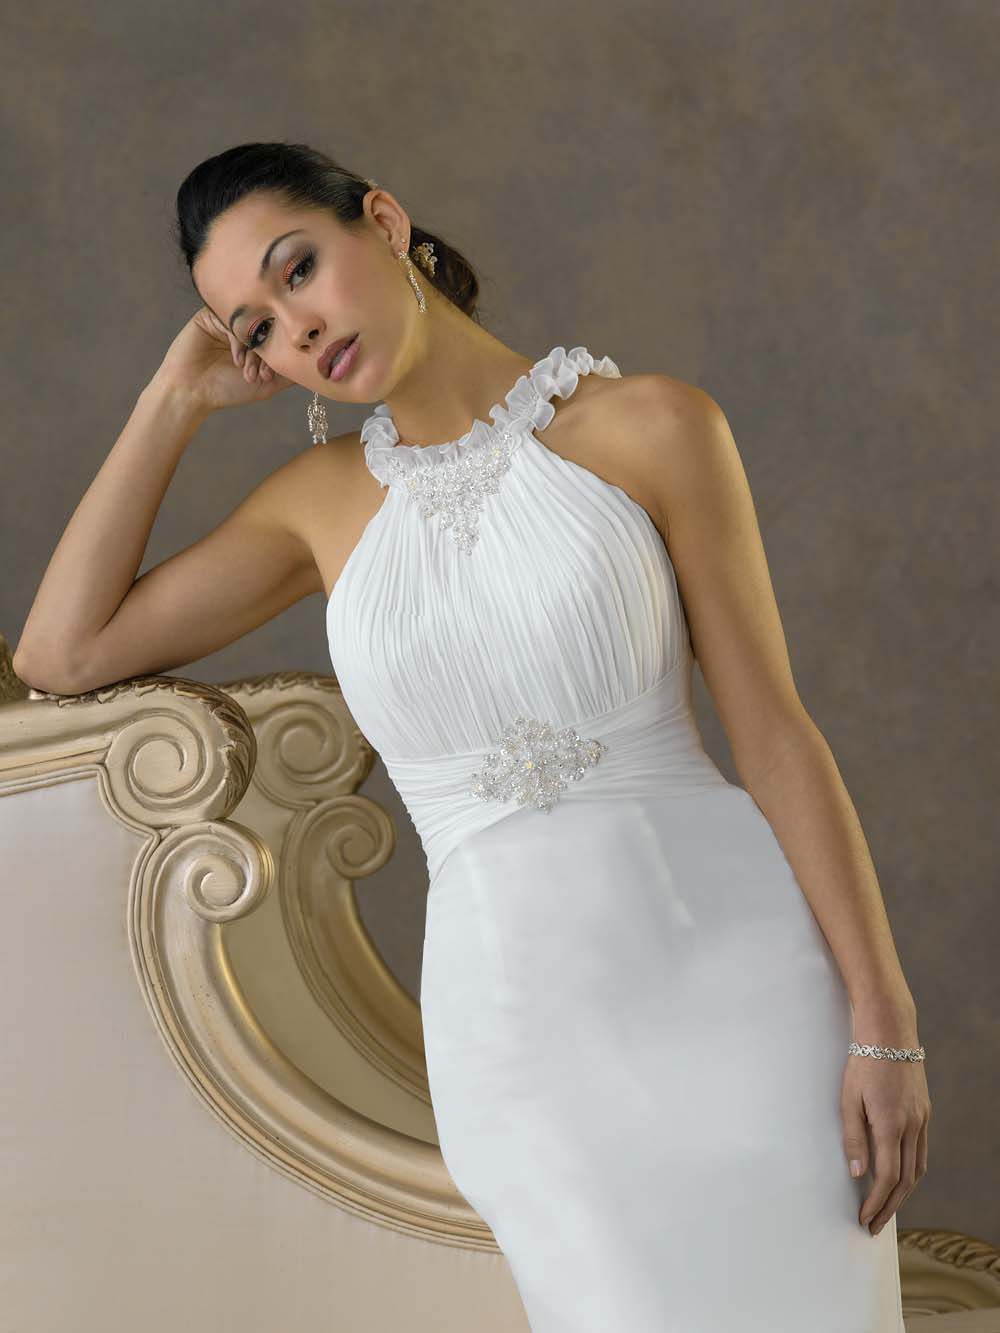 discount wedding dresses atlanta ga » Wedding Dresses Designs, Ideas ...